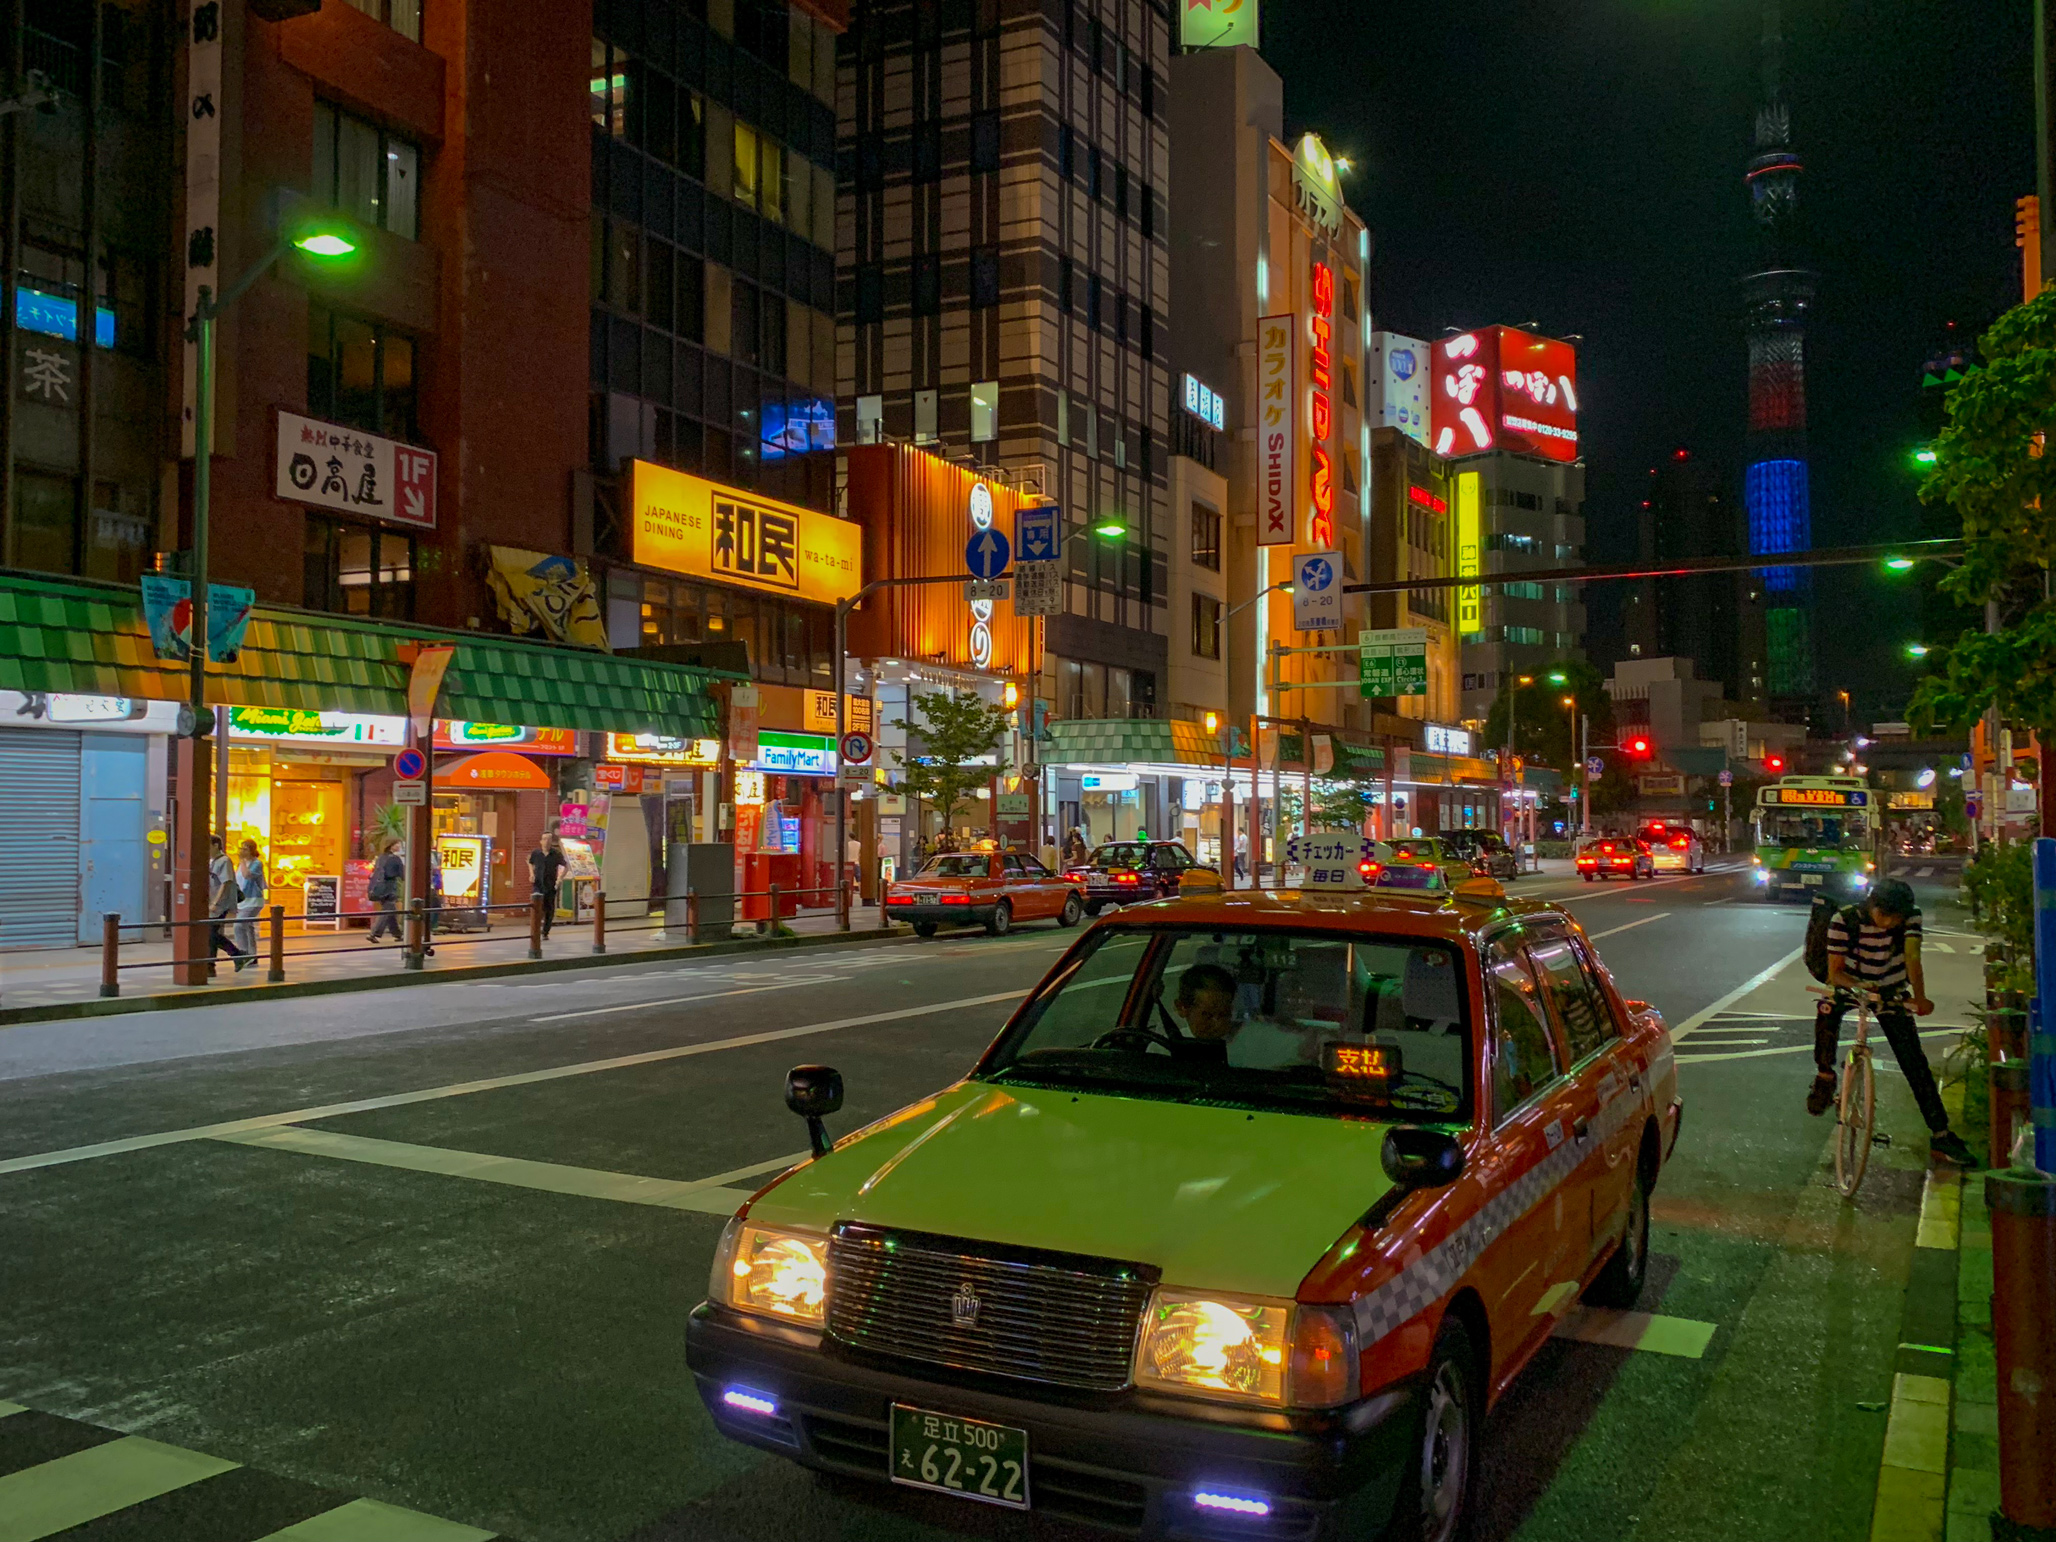 Taxis with automatic back doors are another one of Tokyo's cool little quirks.